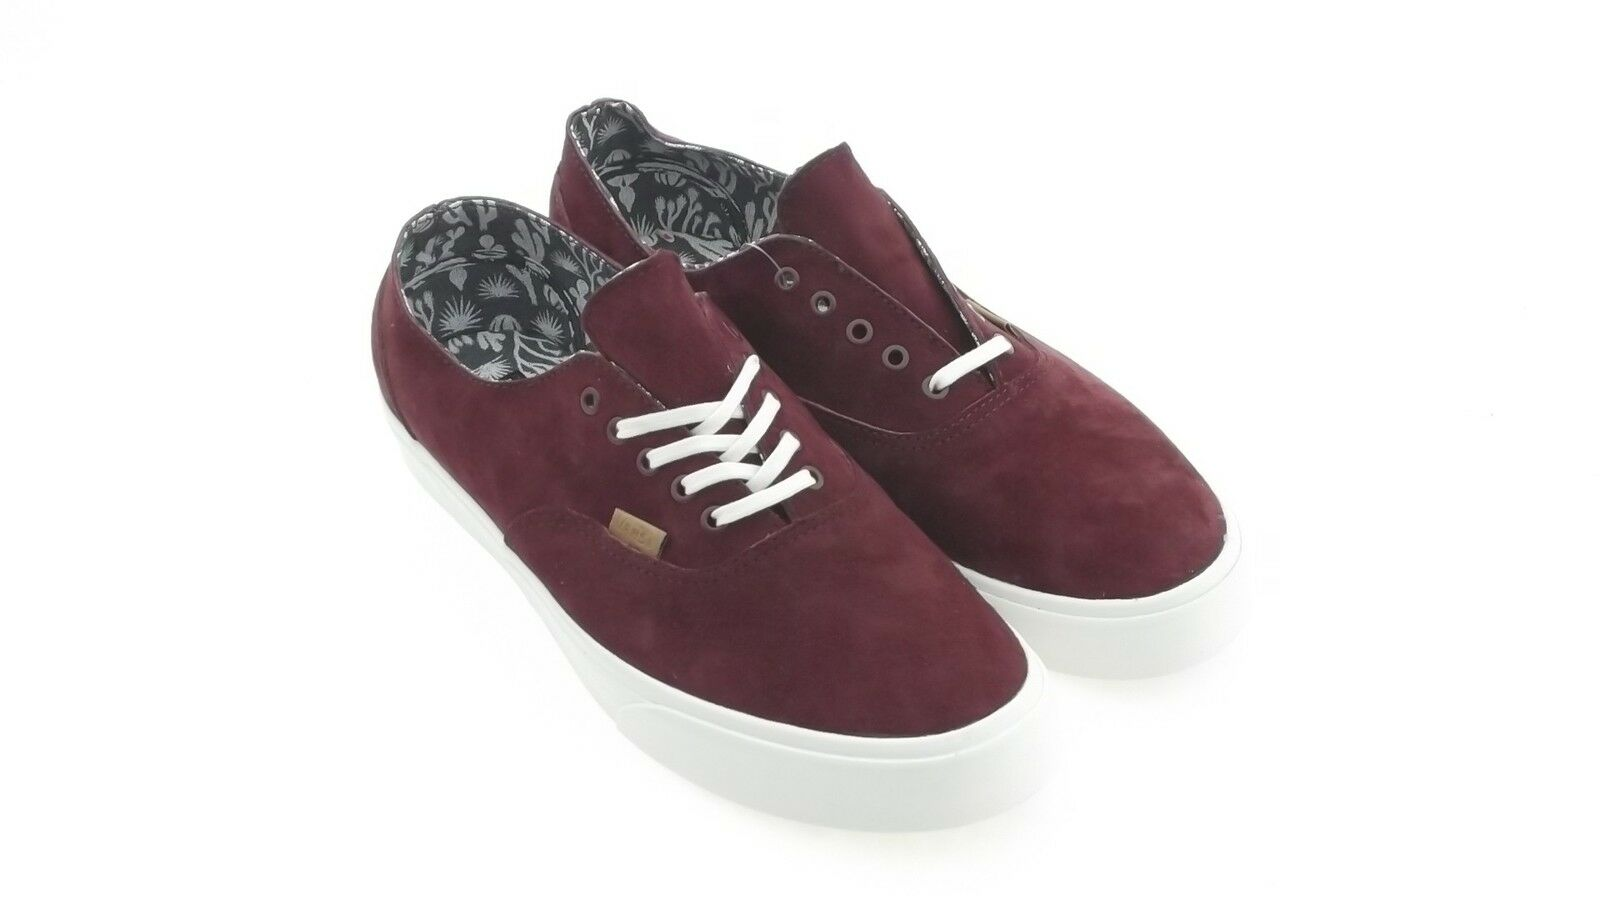 Vans Men Era Decon - CA Pig Suede burgundy port royale VN0OX1GKD